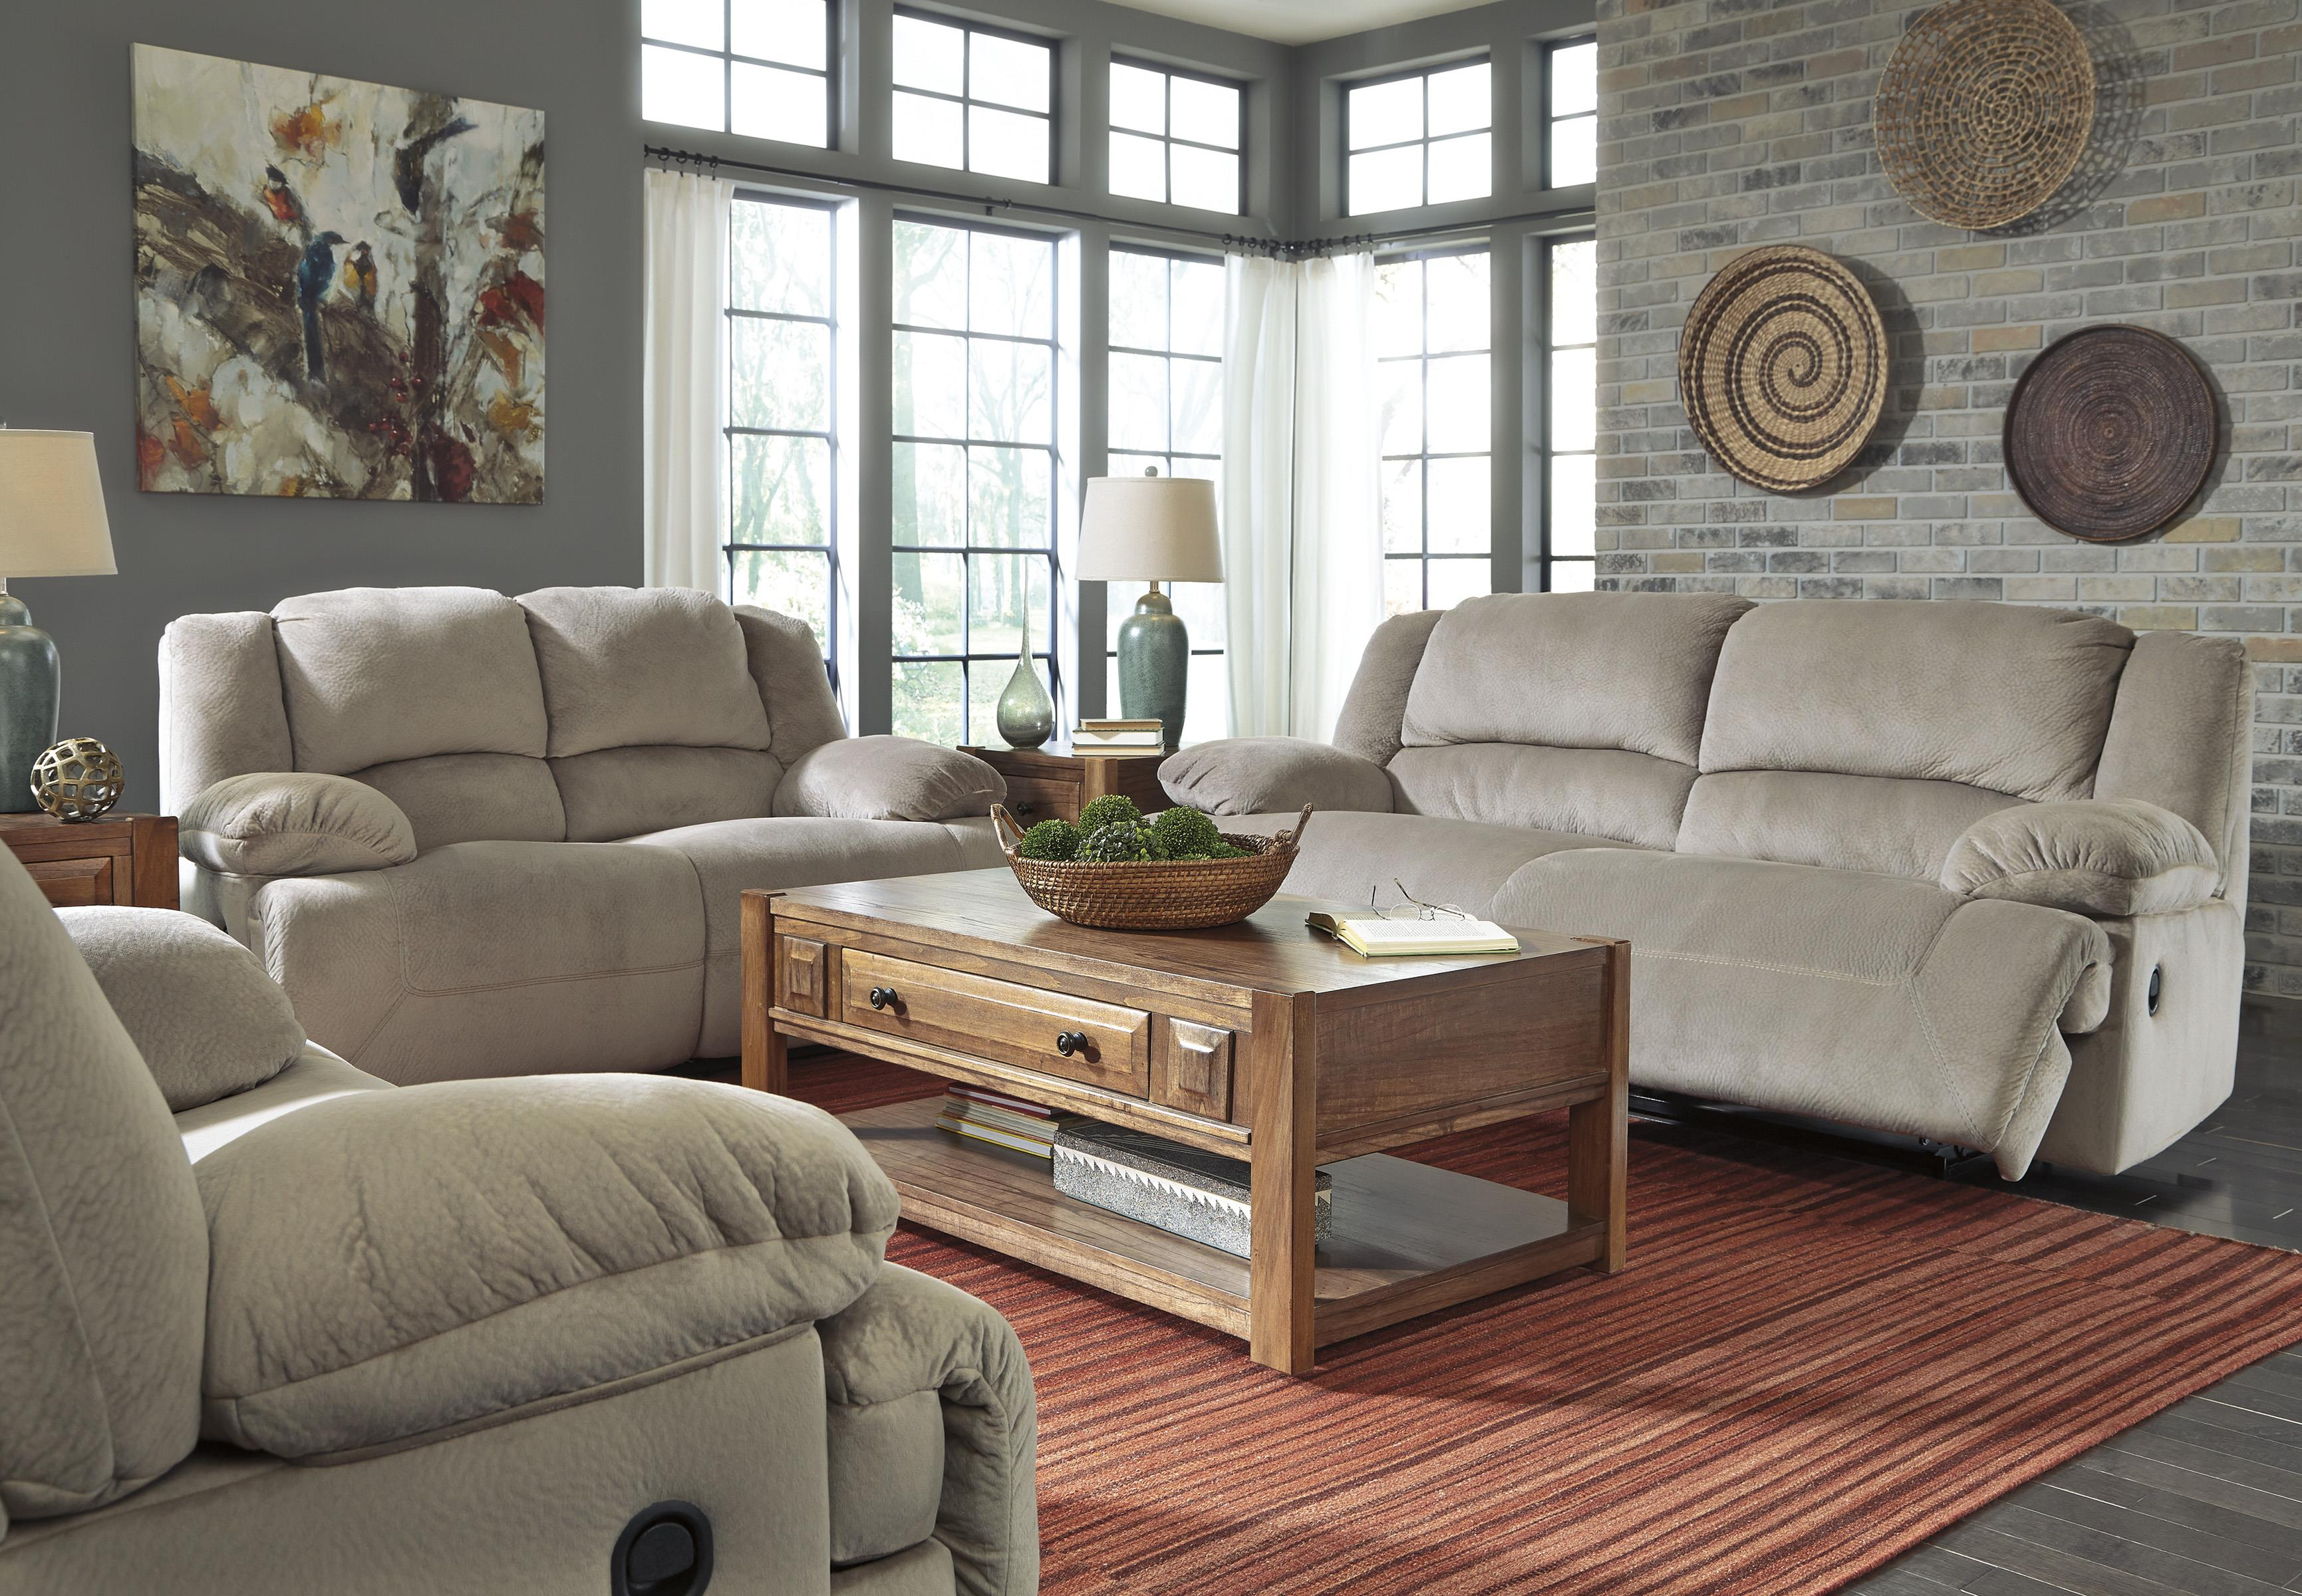 Signature Design by Ashley Toletta - Granite Power Reclining Living Room Group - Item Number: 56703 Living Room Group 4